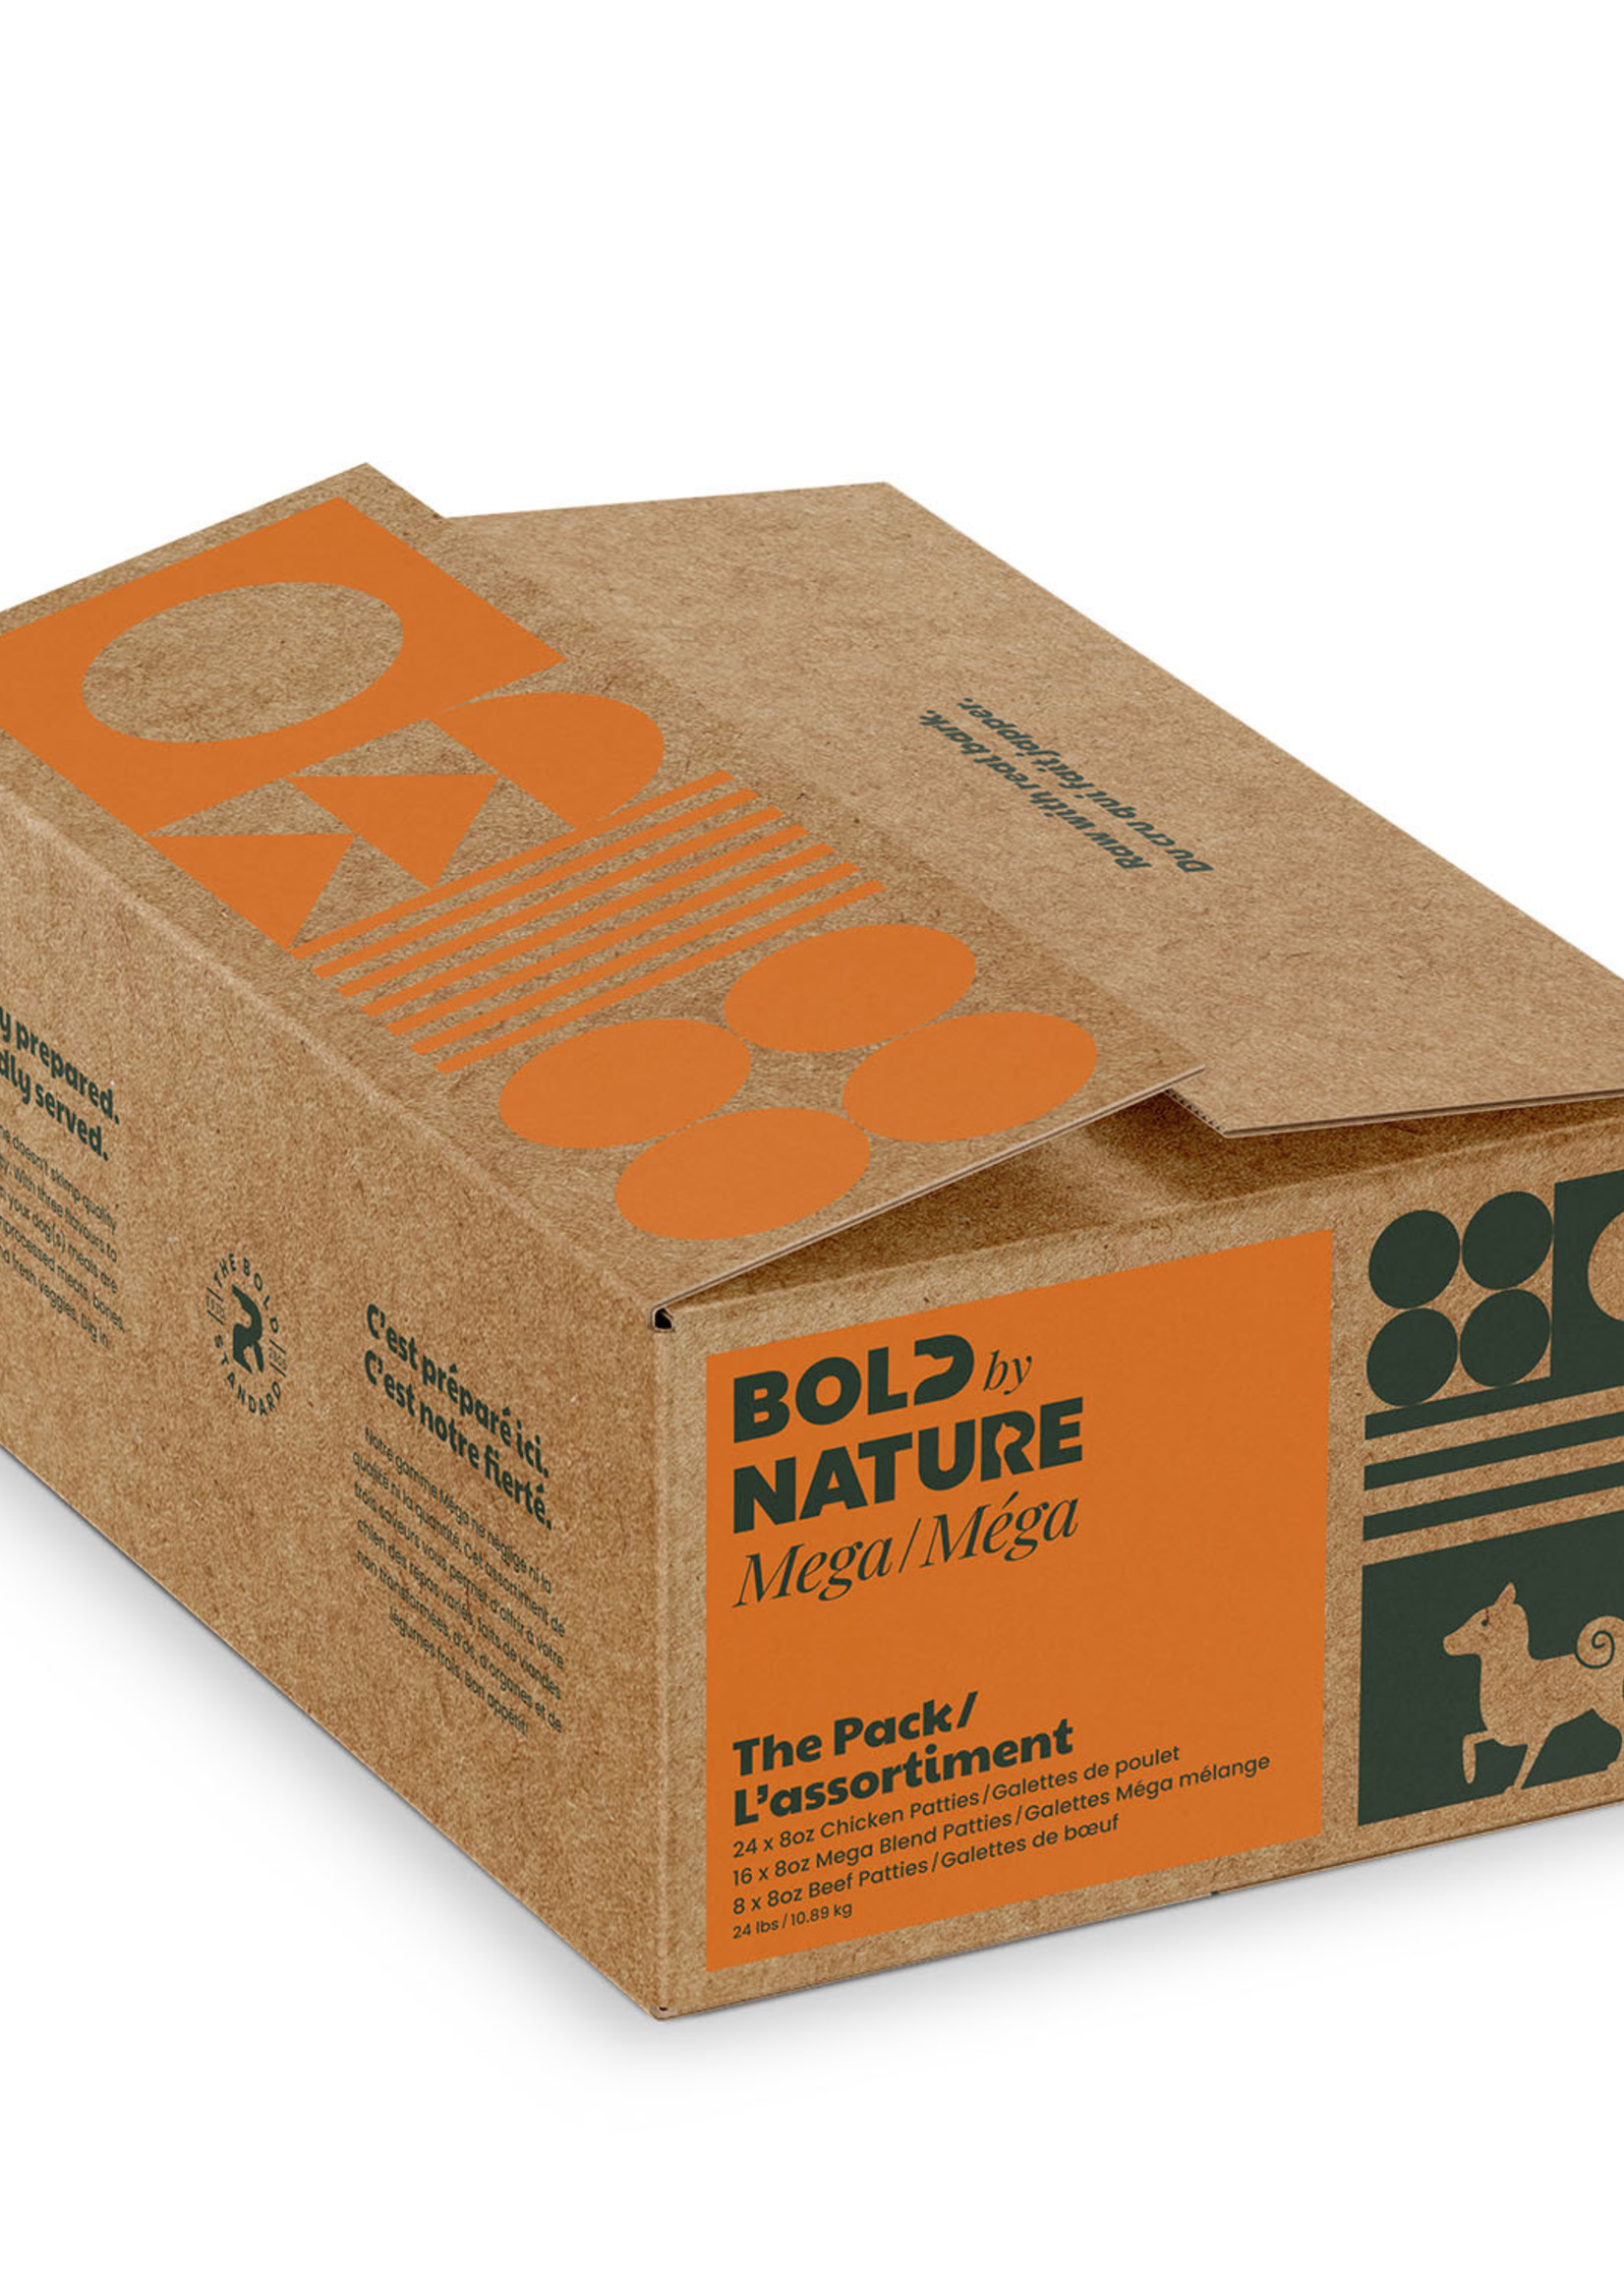 Bold by Nature© Bold by Nature© The Pack: Chicken Variety 24lbs